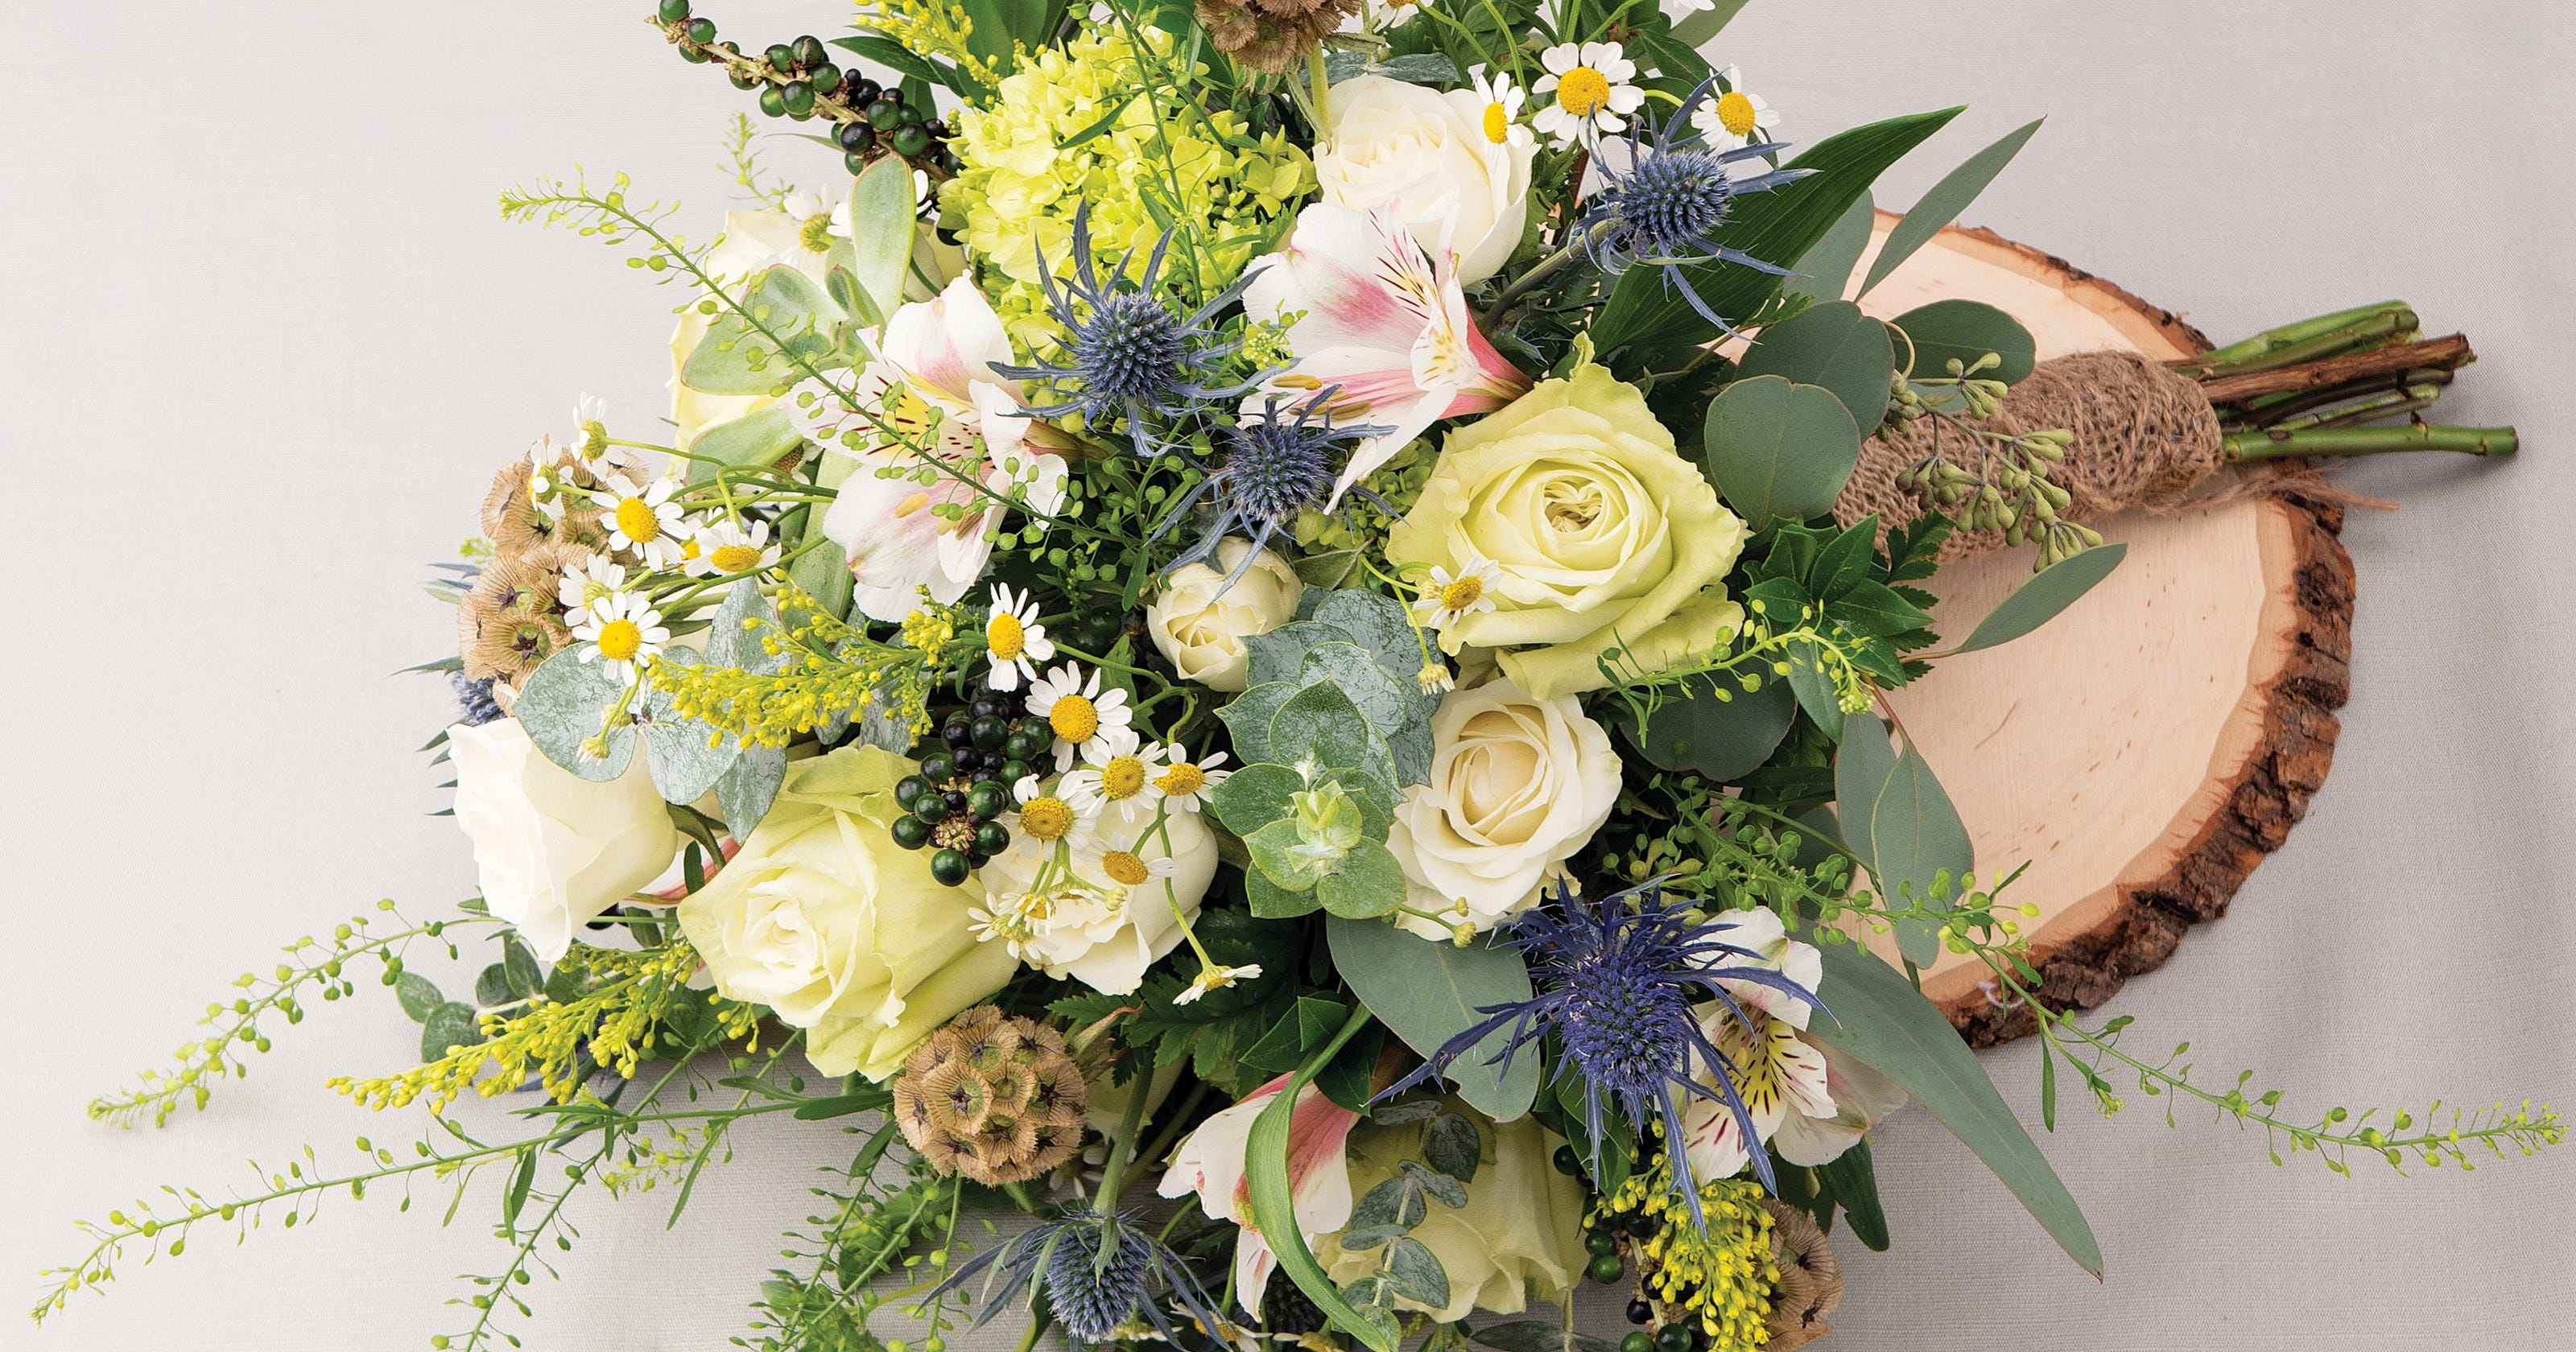 5 Wedding Bouquets That Will Make Other Brides Envious